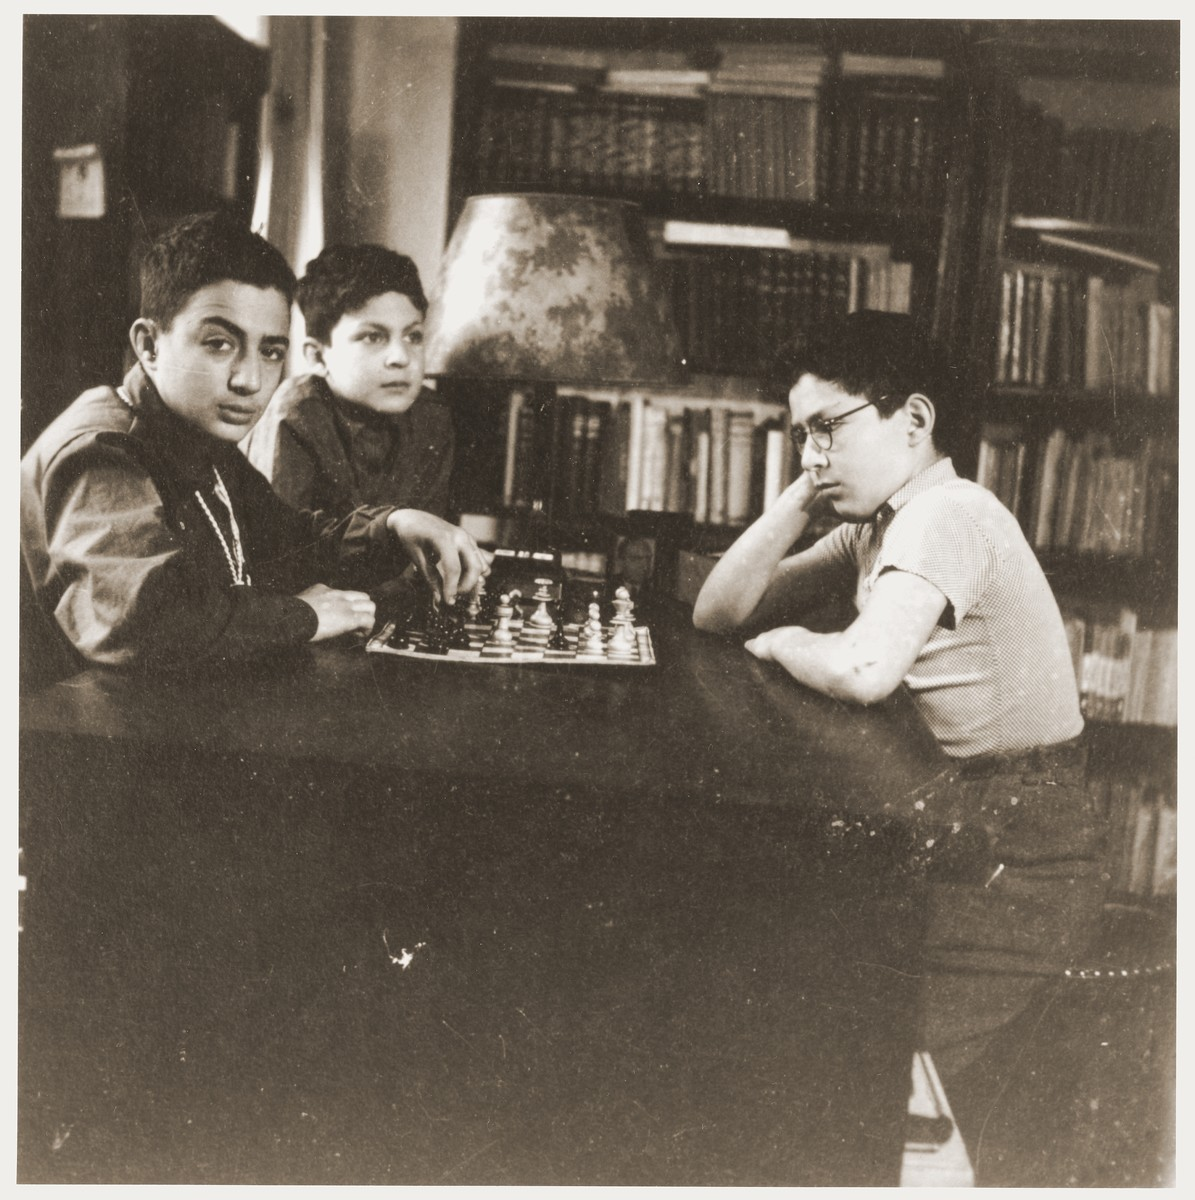 Amos and Binyamin Rabinovitch playing chess in the family house on Gedimino Street.  Their younger brother Shmuel looks on.